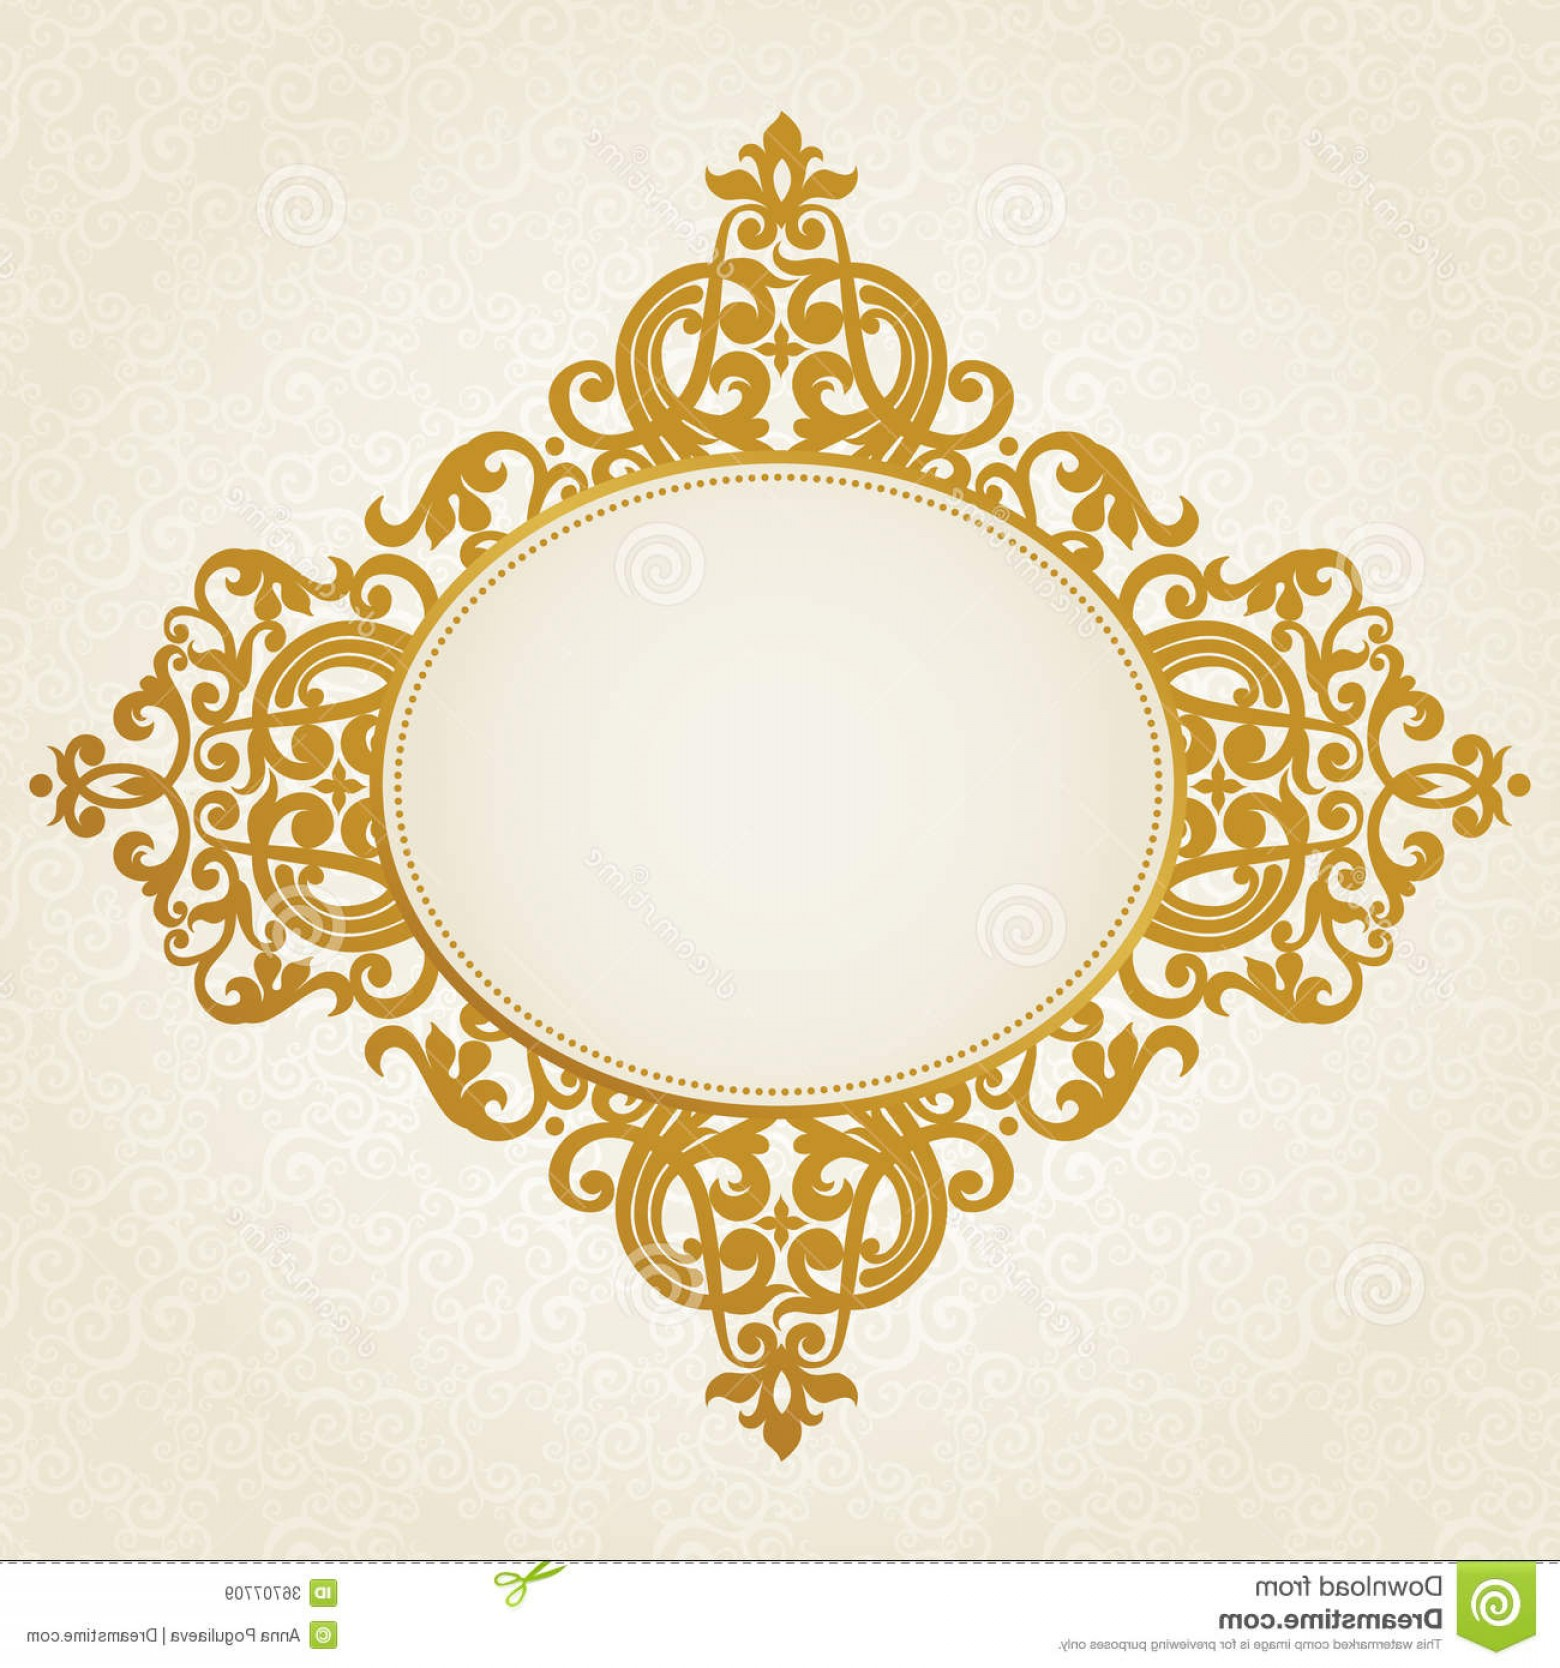 Victorian Style Frame Vector: Royalty Free Stock Images Vector Baroque Frame Victorian Style Element Design You Can Place Text Empty Can Be Used Decorating Image